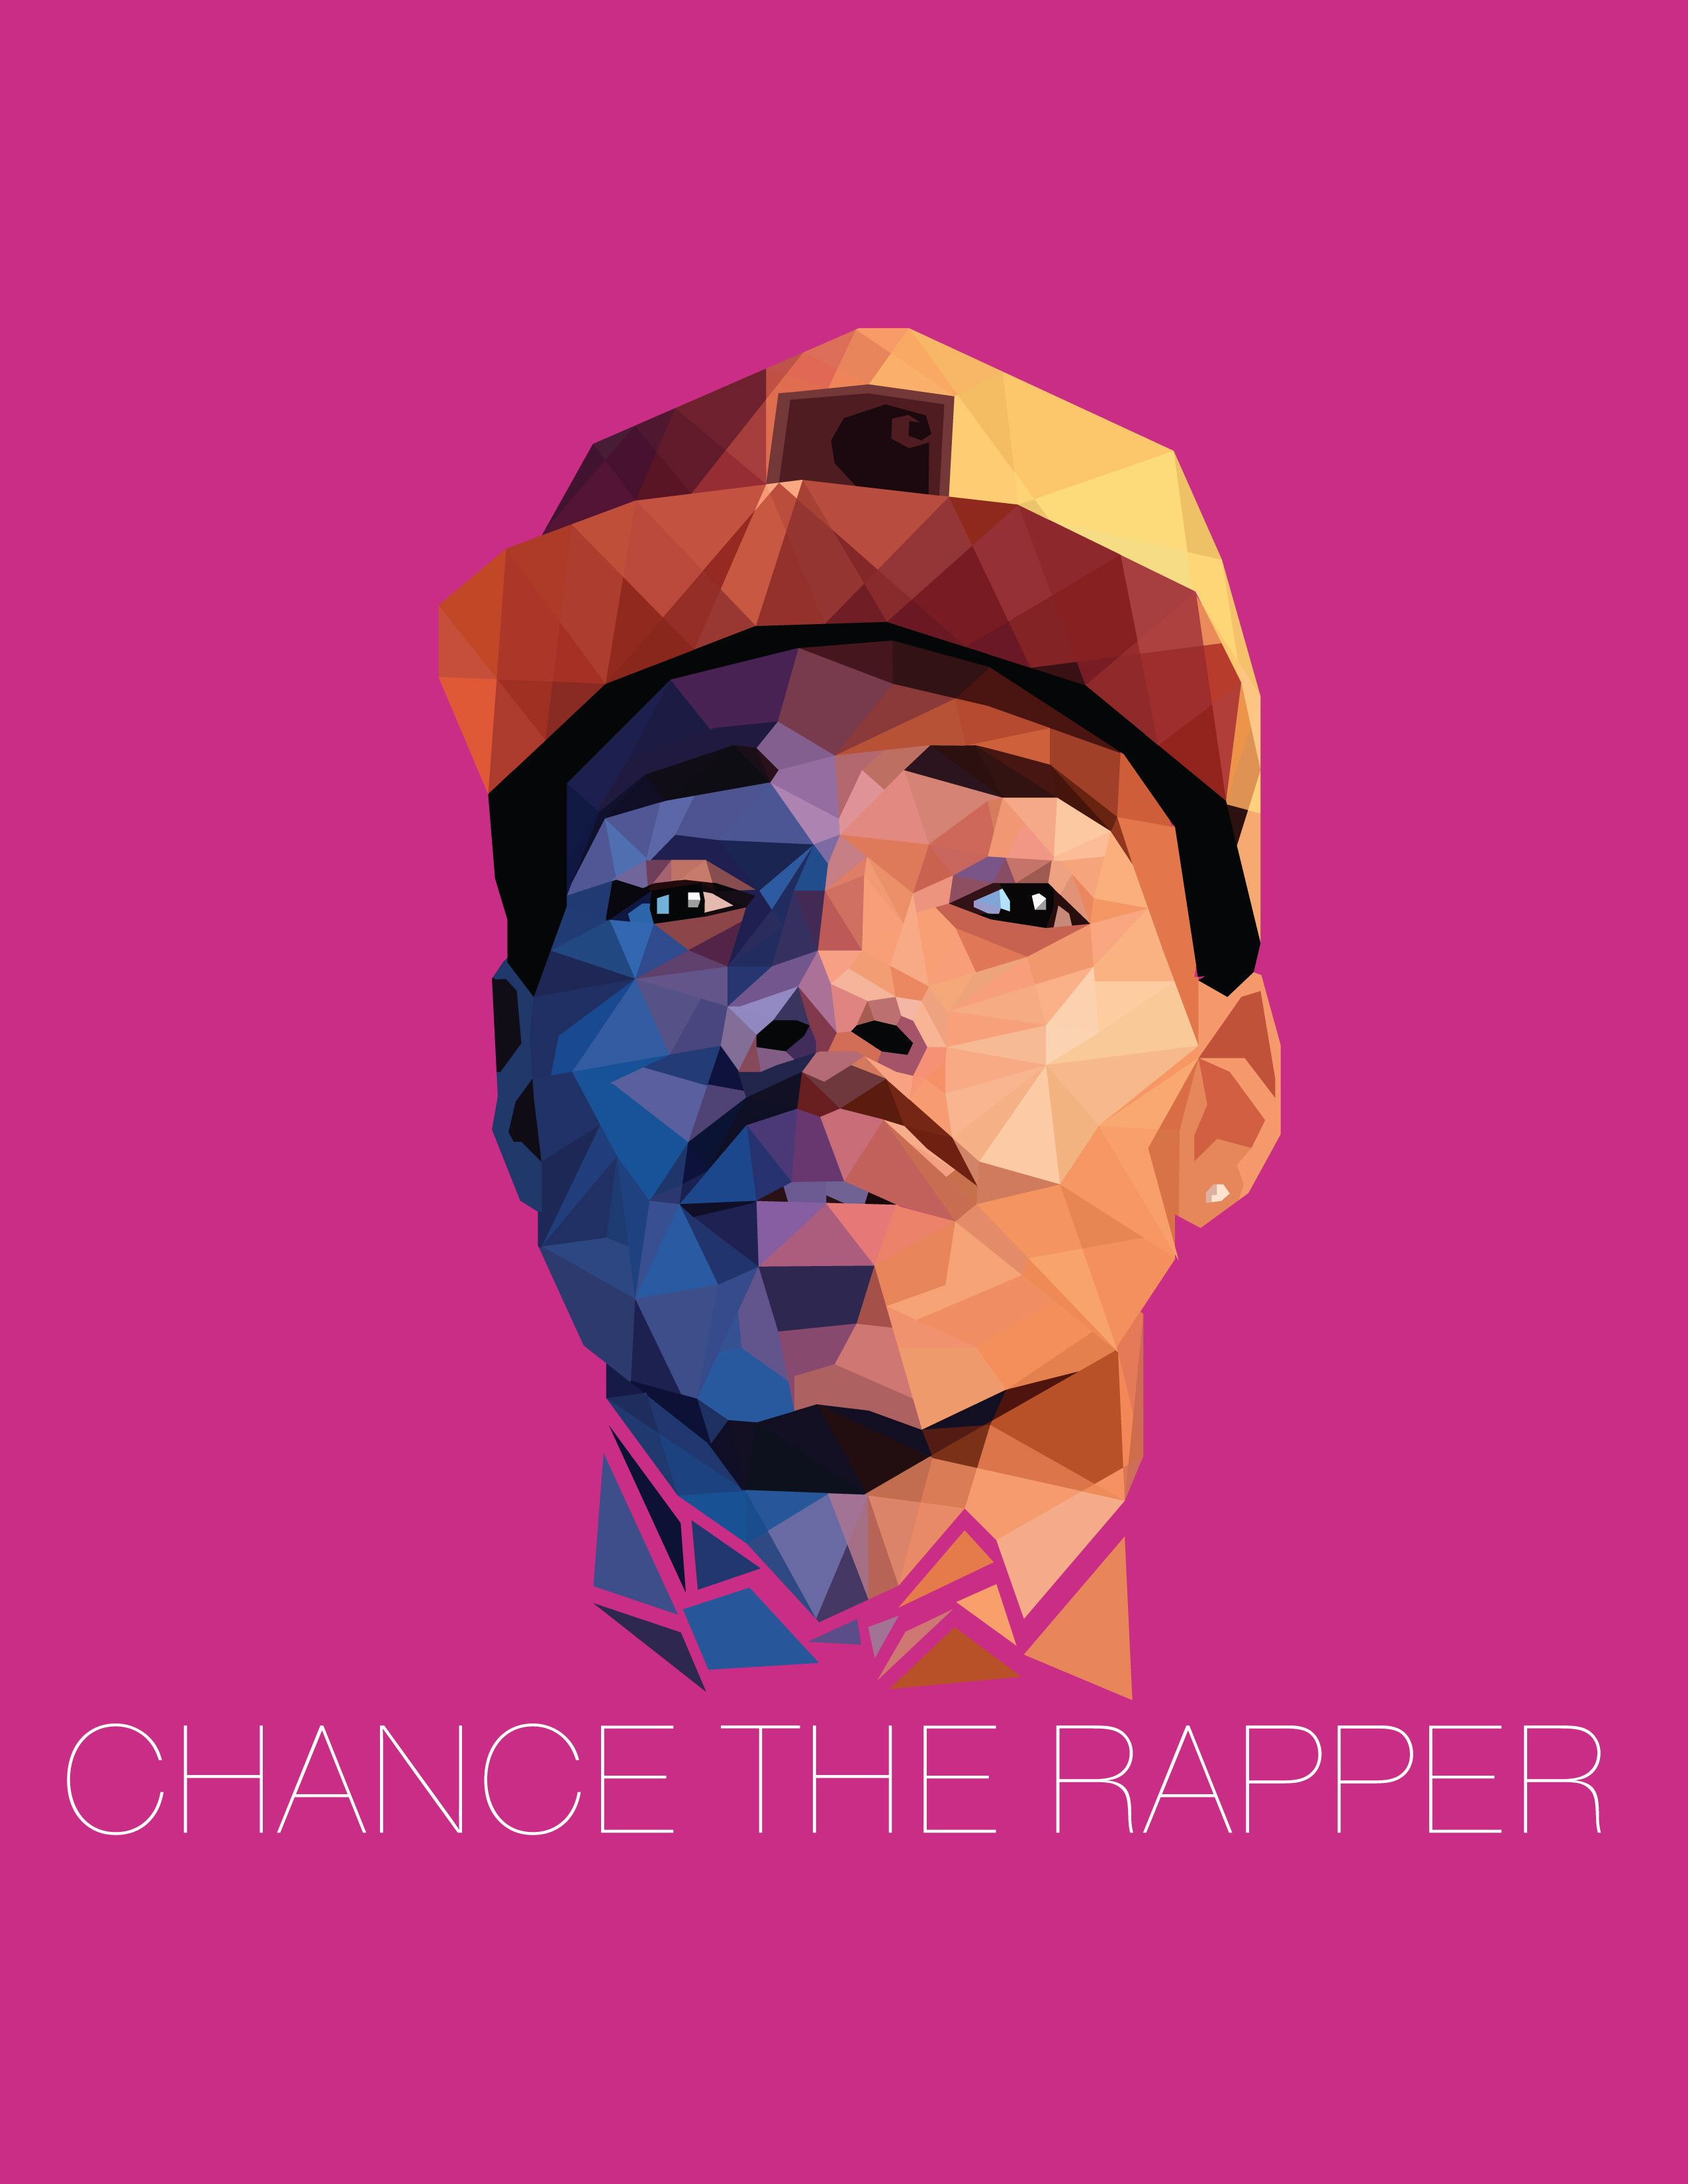 Chance The Rapper Poster By Dezlim On Reddit Chance The Rapper Chance The Rapper Wallpaper Chance The Rapper Art